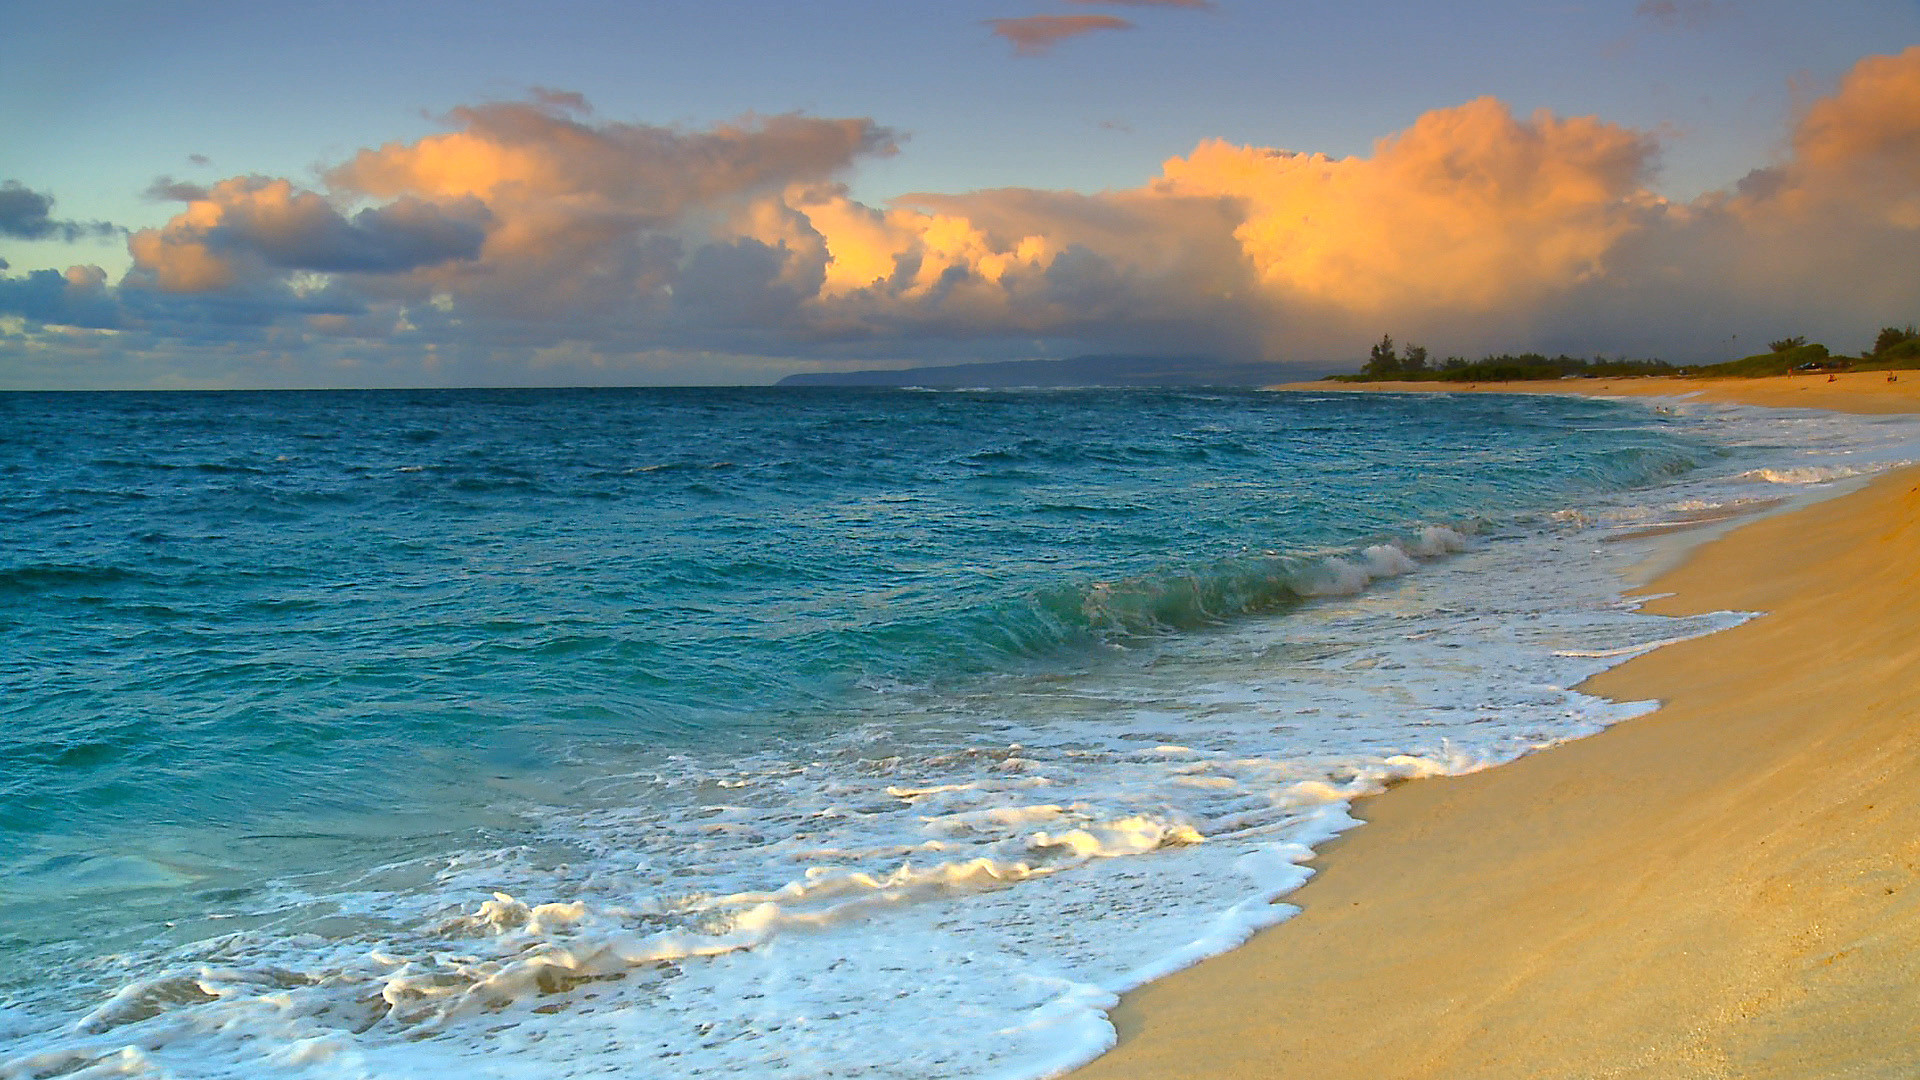 1920x1080 hawaii, photos, background, screensaver, beach, beaches, media .